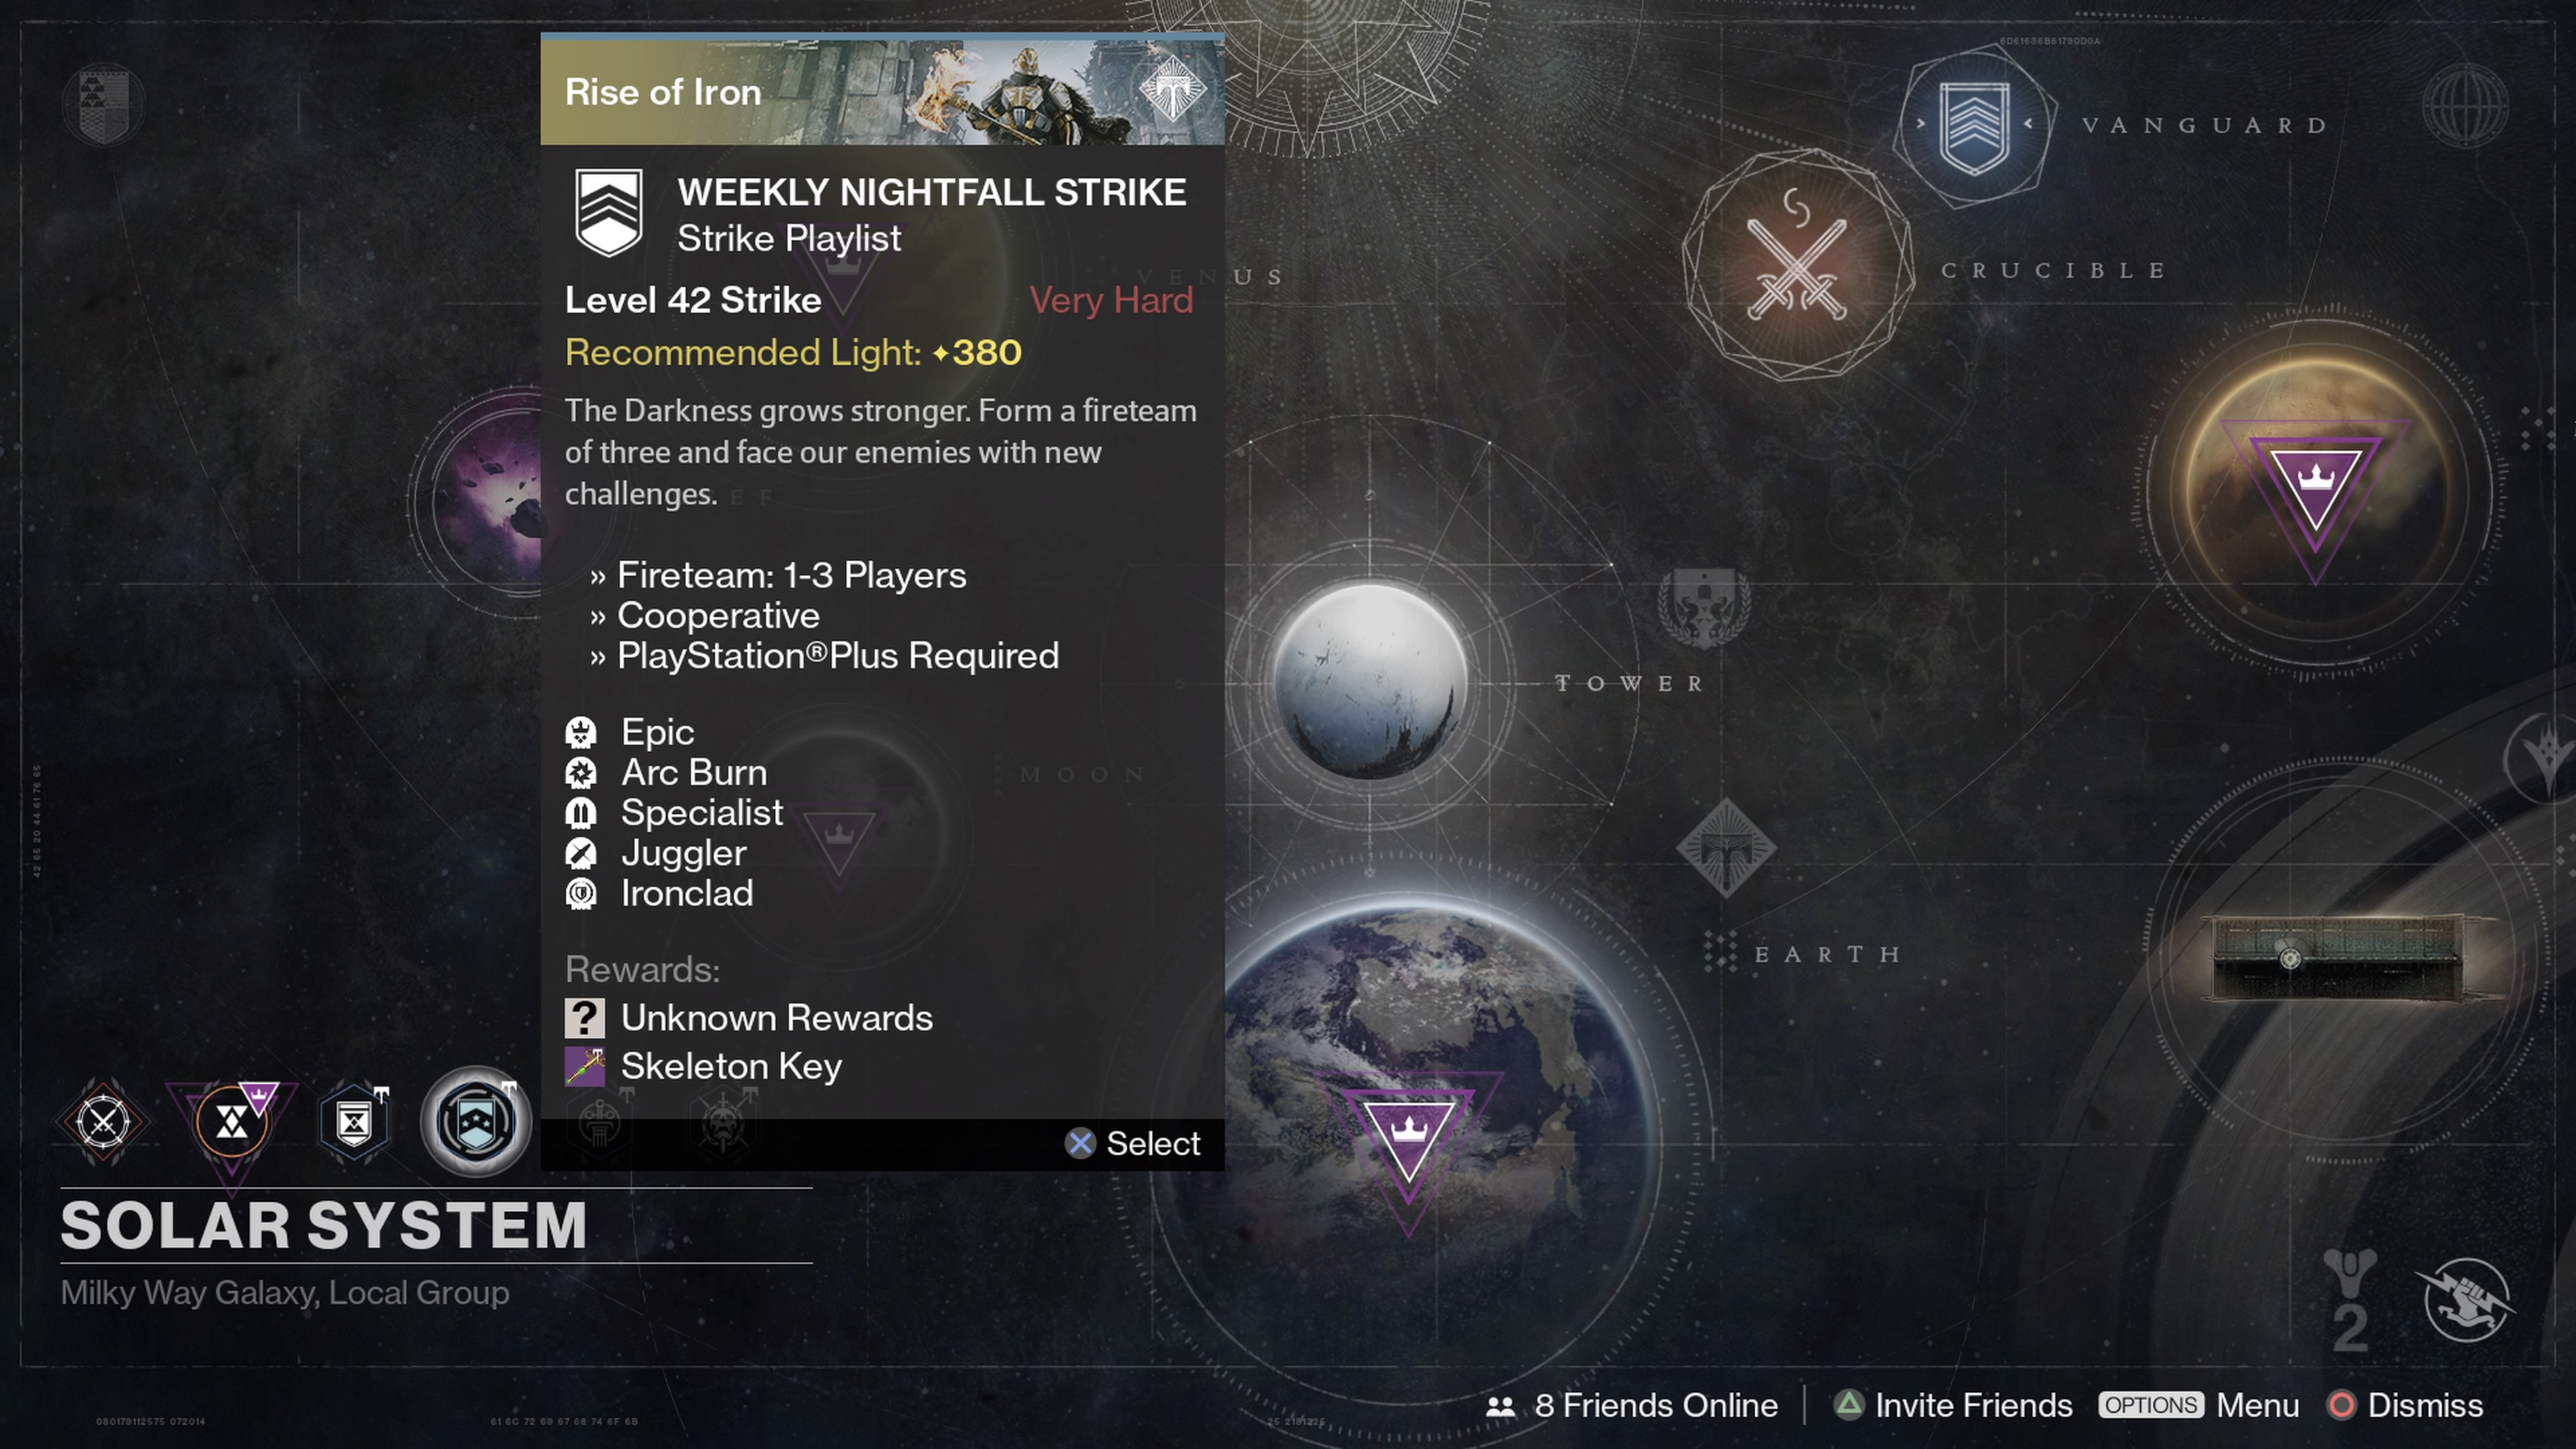 Grab three friends and form a Fireteam of three to complete the Weekly Nightfall Strike